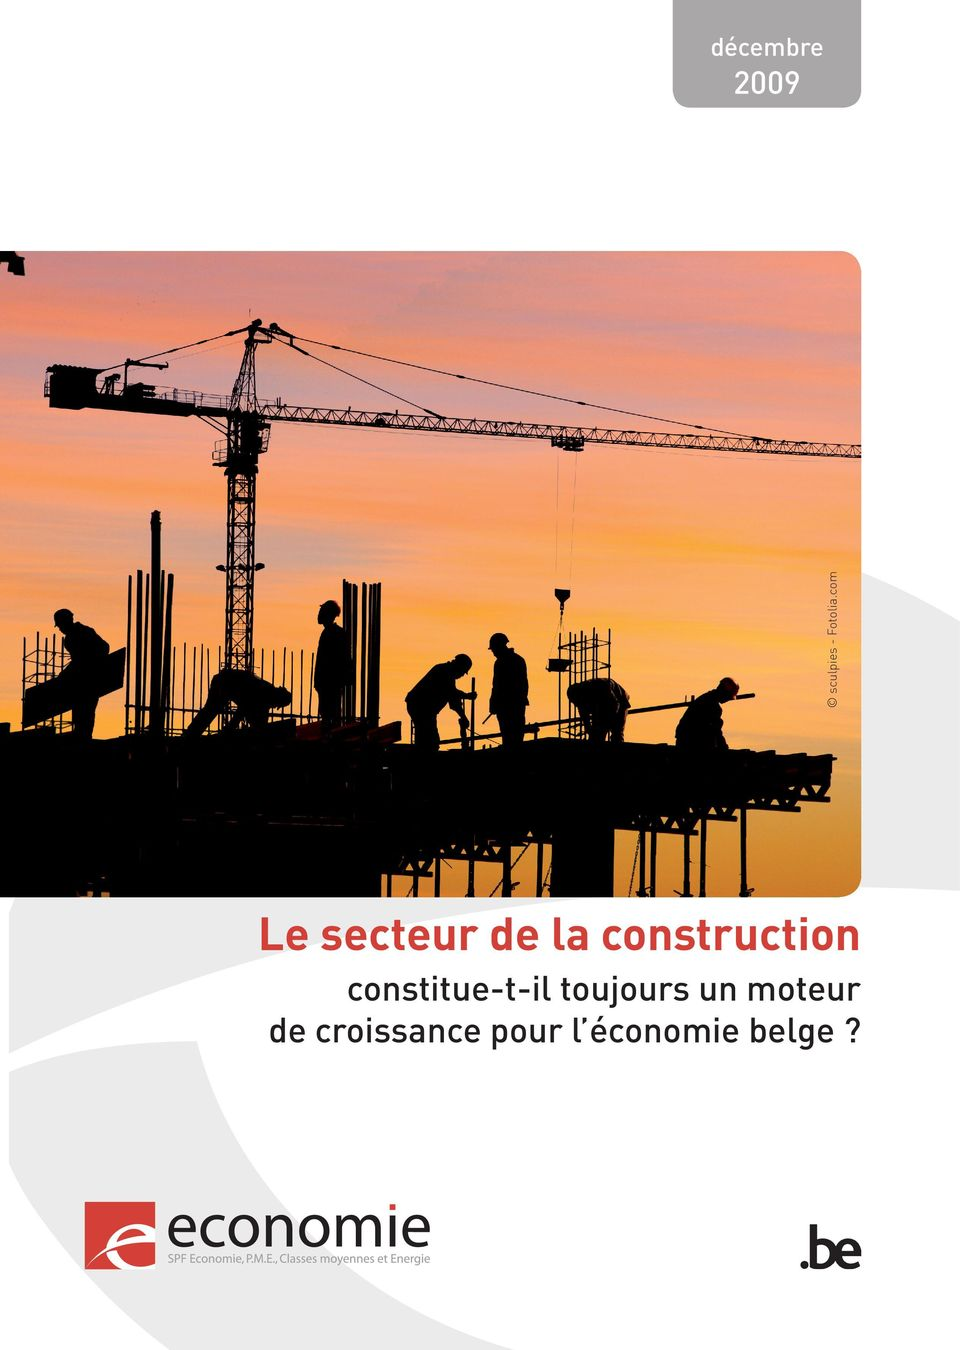 construction constitue-t-il